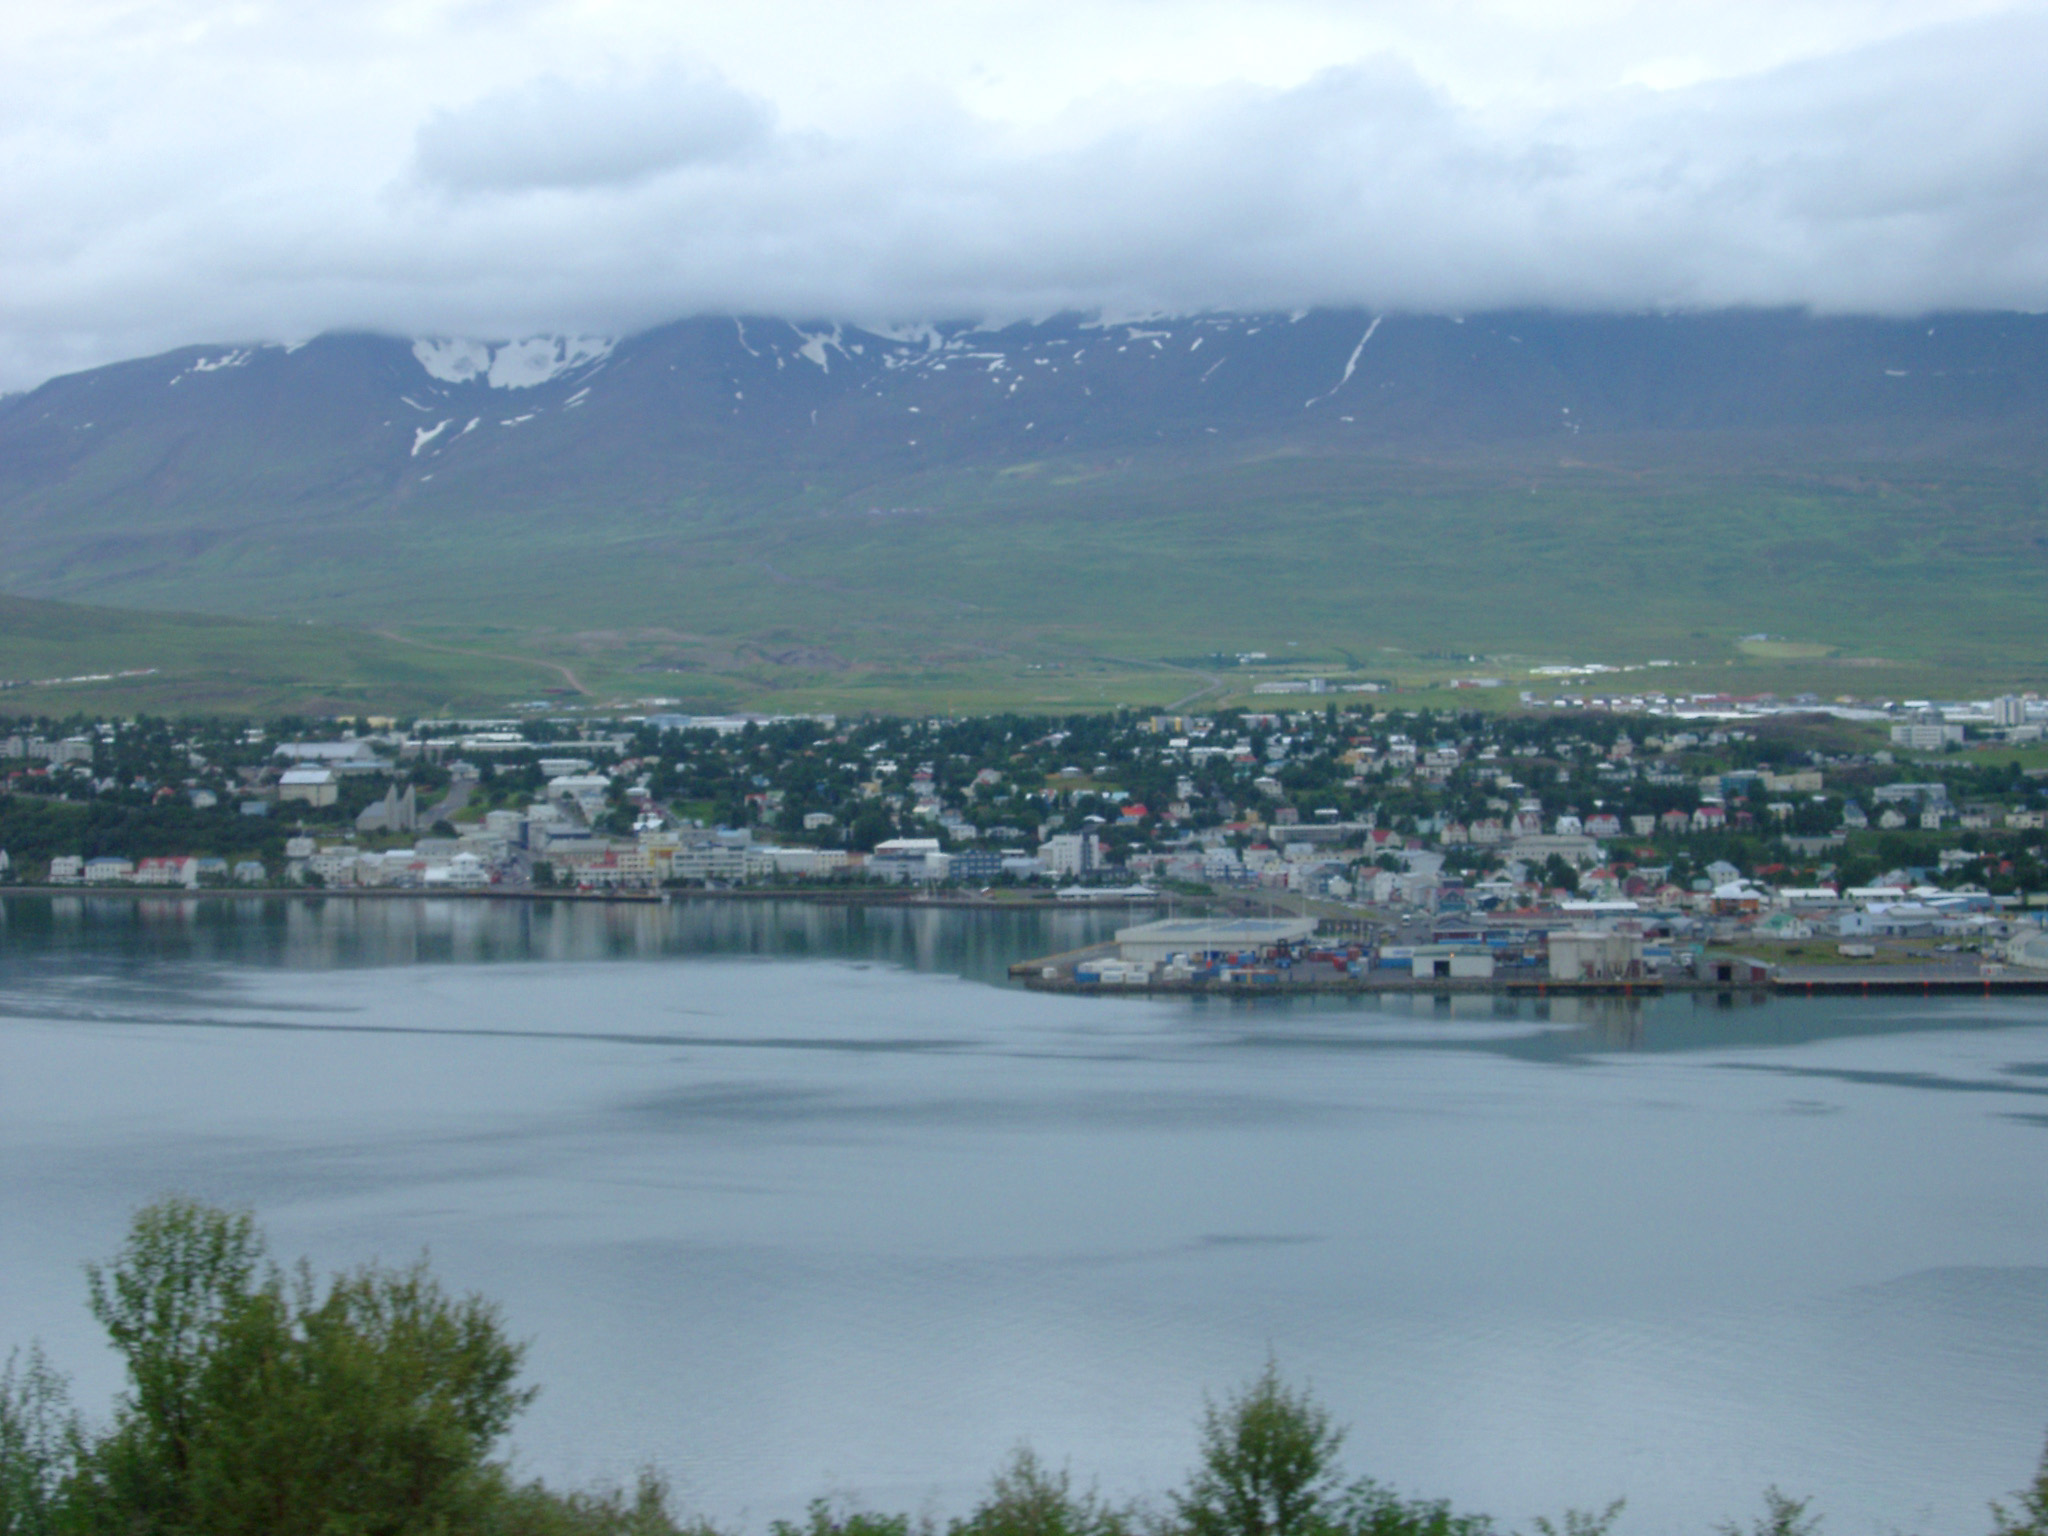 View of Akureyri from Across Eyjafjorour Fjord in Iceland